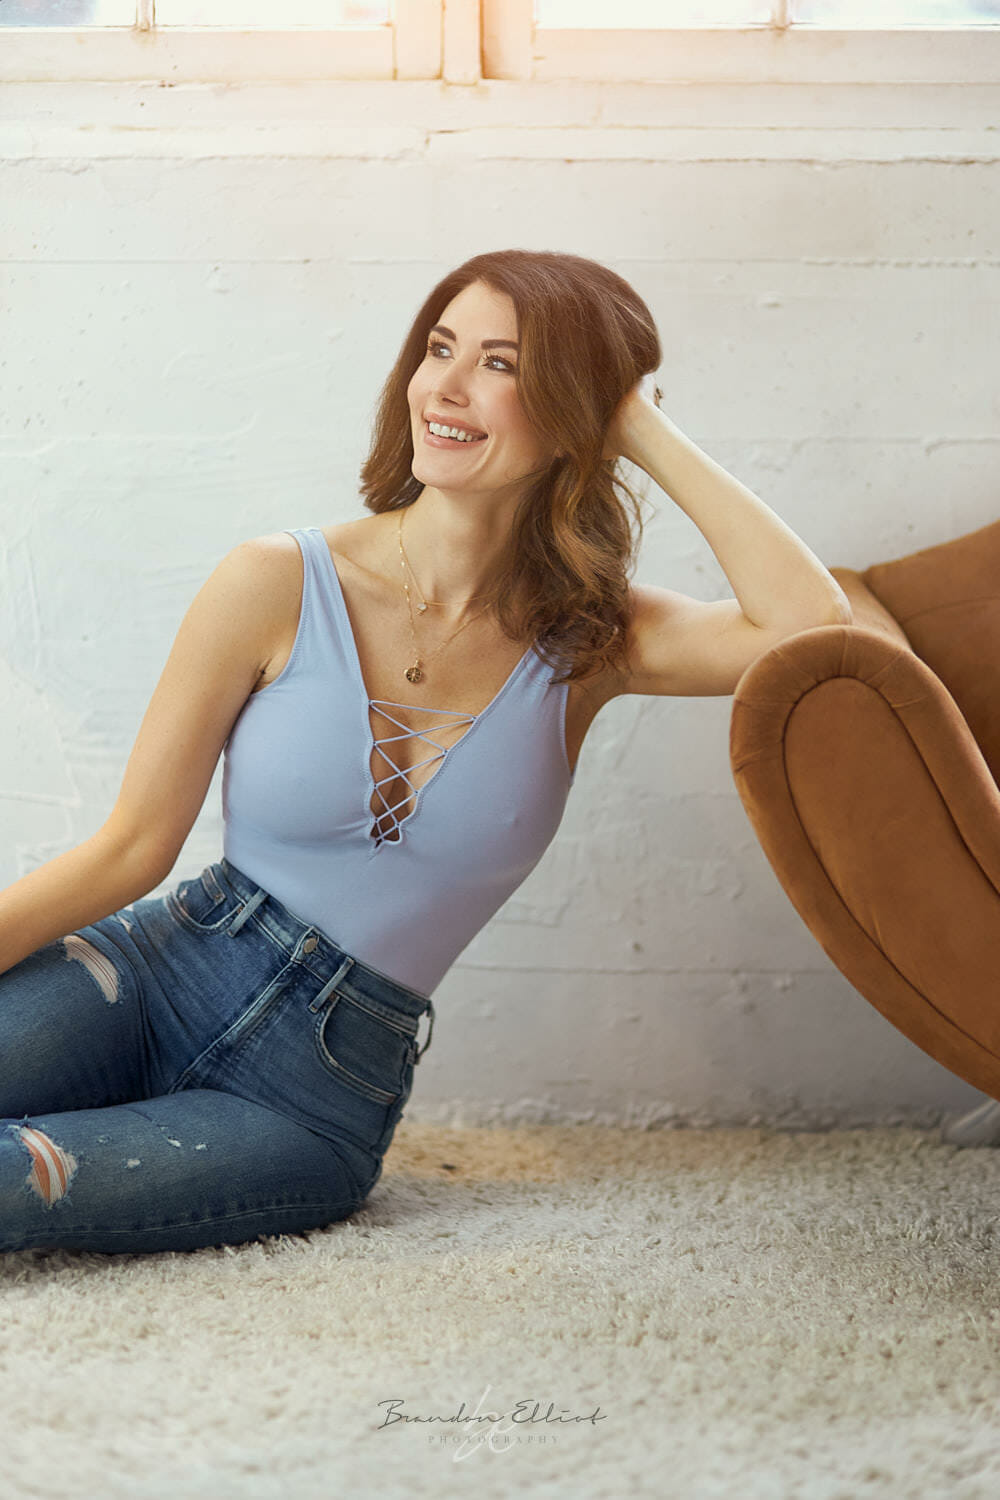 Jewel staite smiling off camera